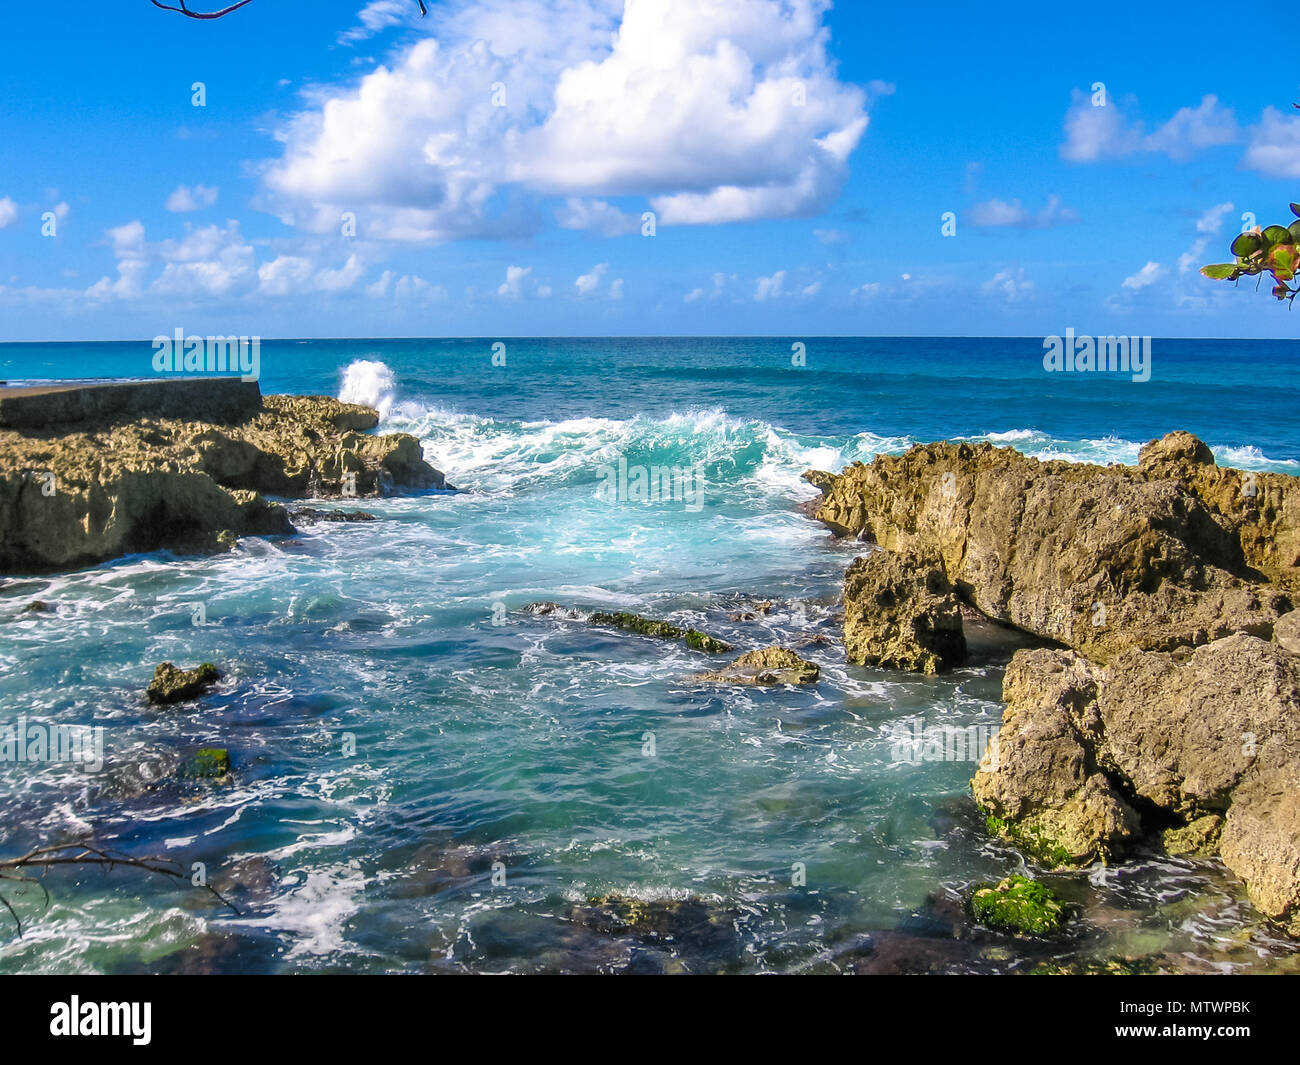 Rocks and strong waves crashing on rocks in the wild north coast of Guadeloupe, Caribbean, French West Indies. - Stock Image